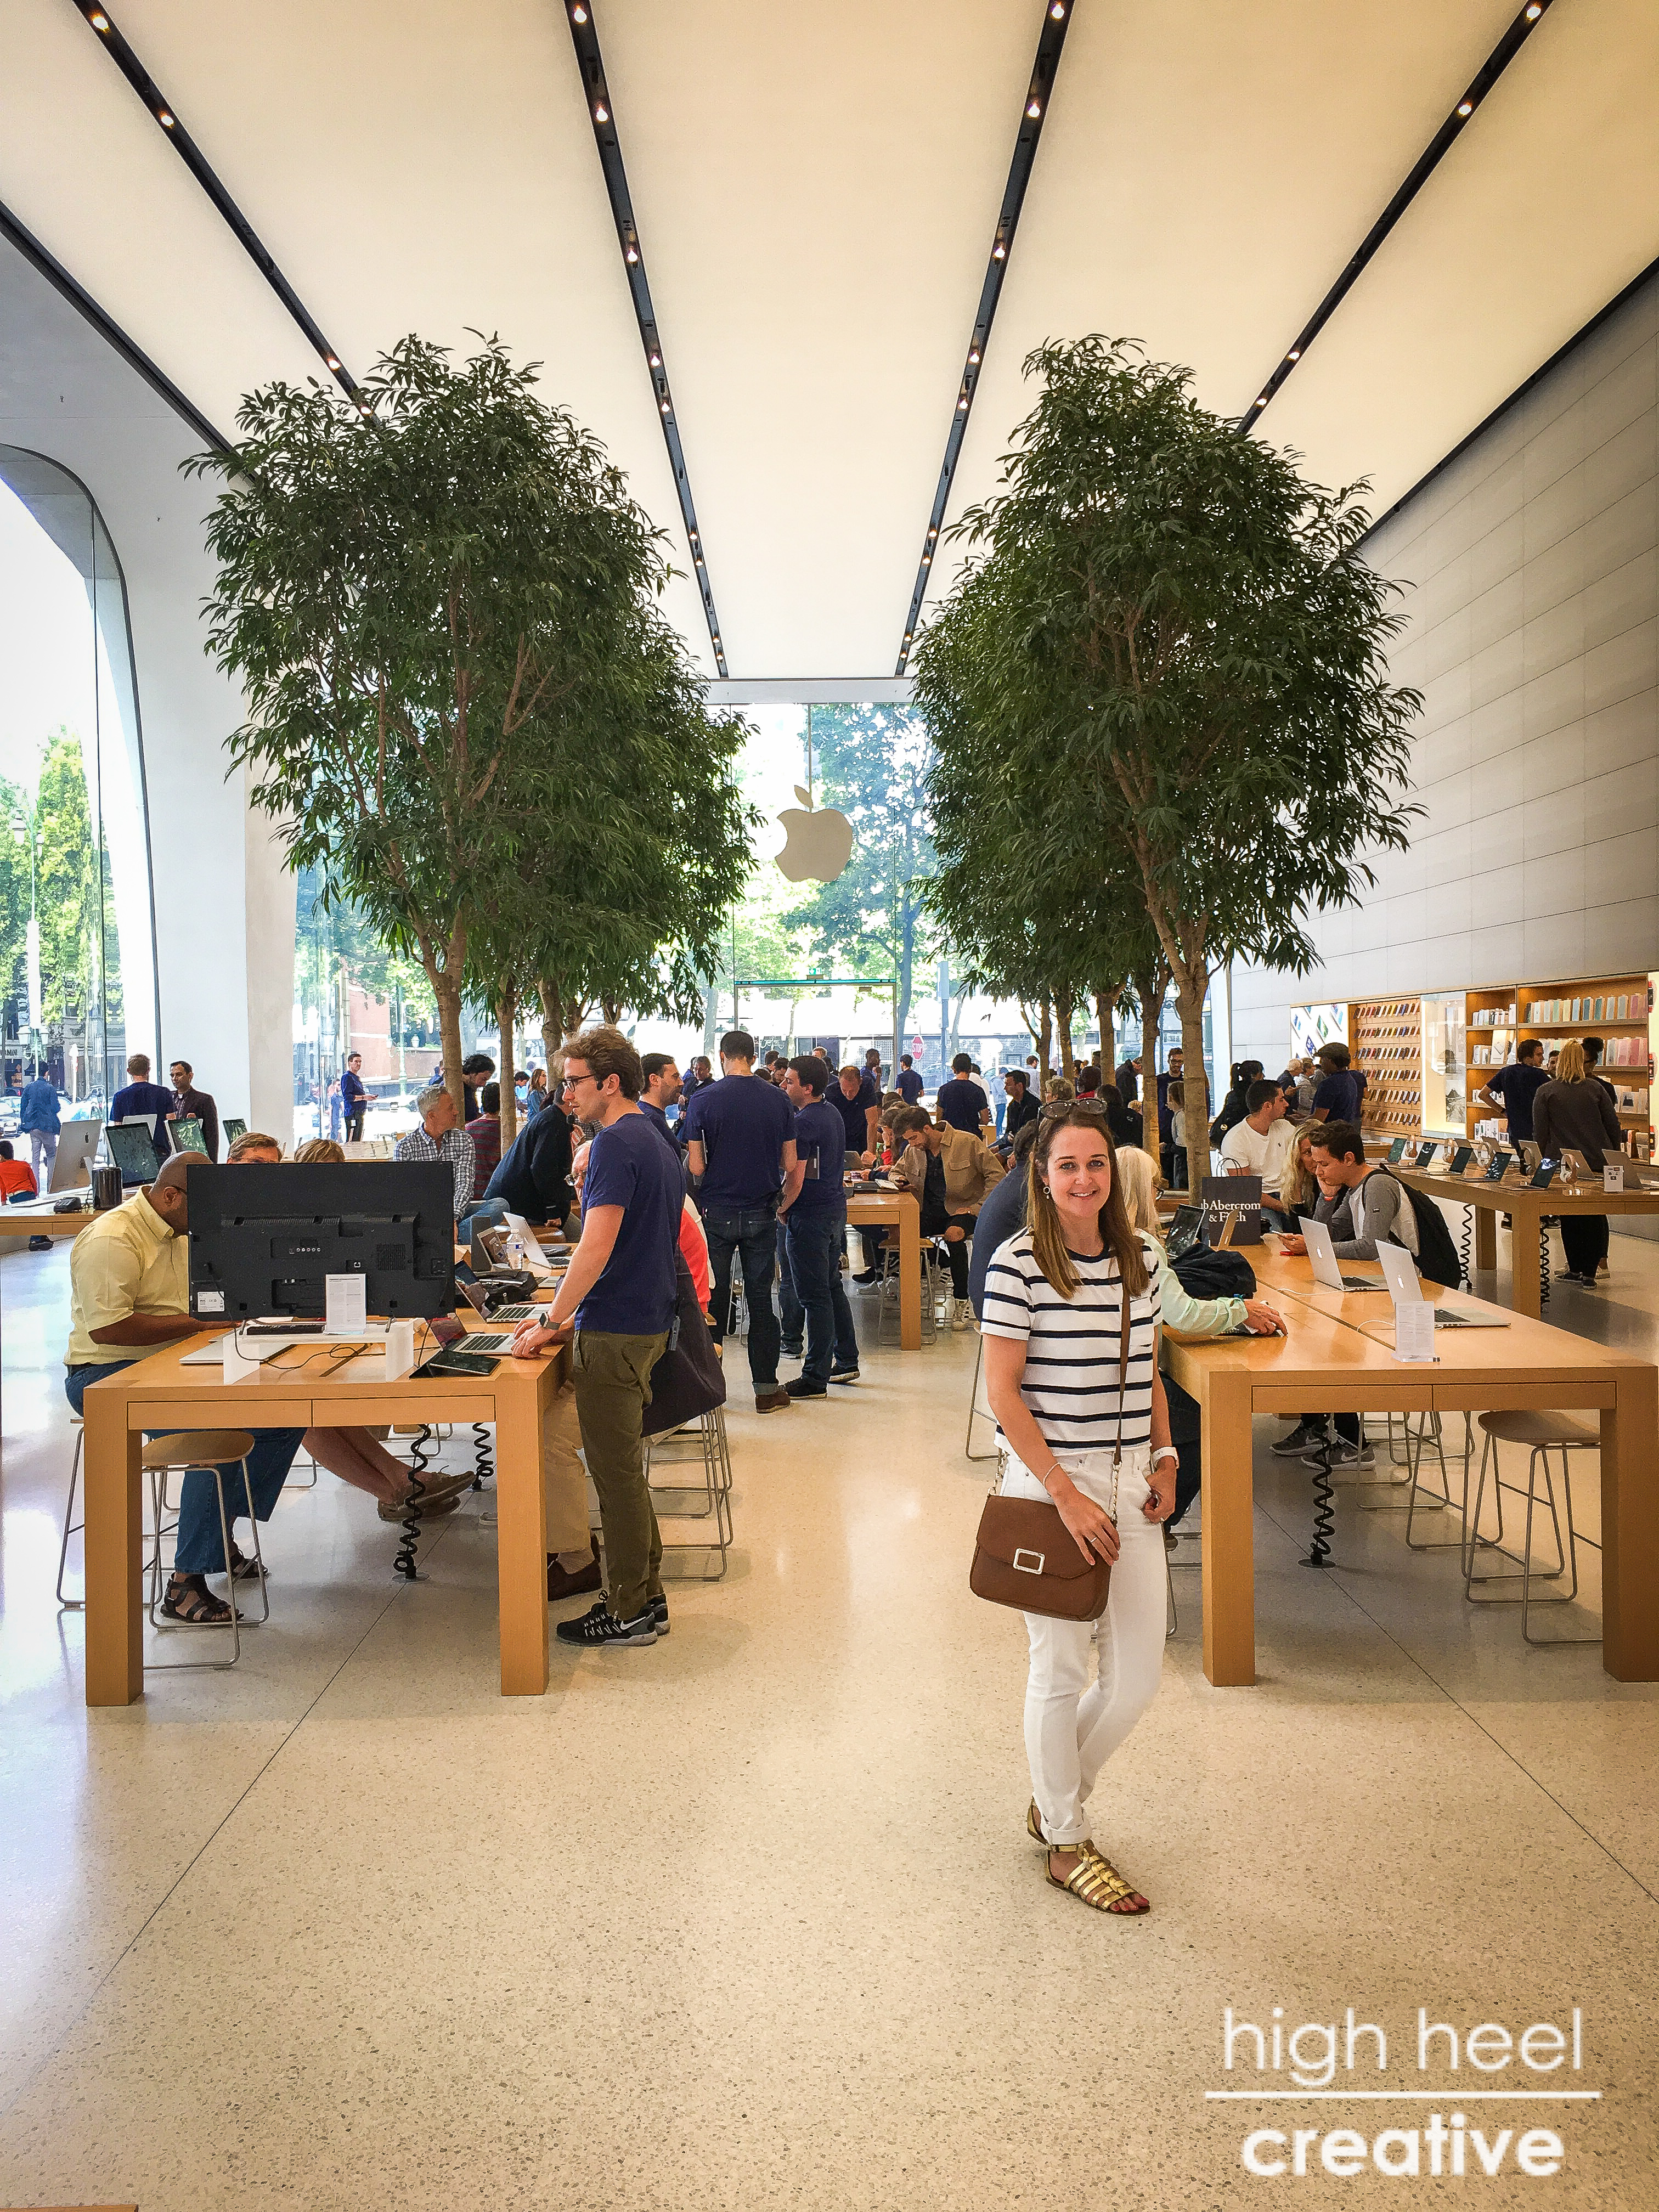 Brussels Apple Store - The First Jonathan Ive Influenced Store